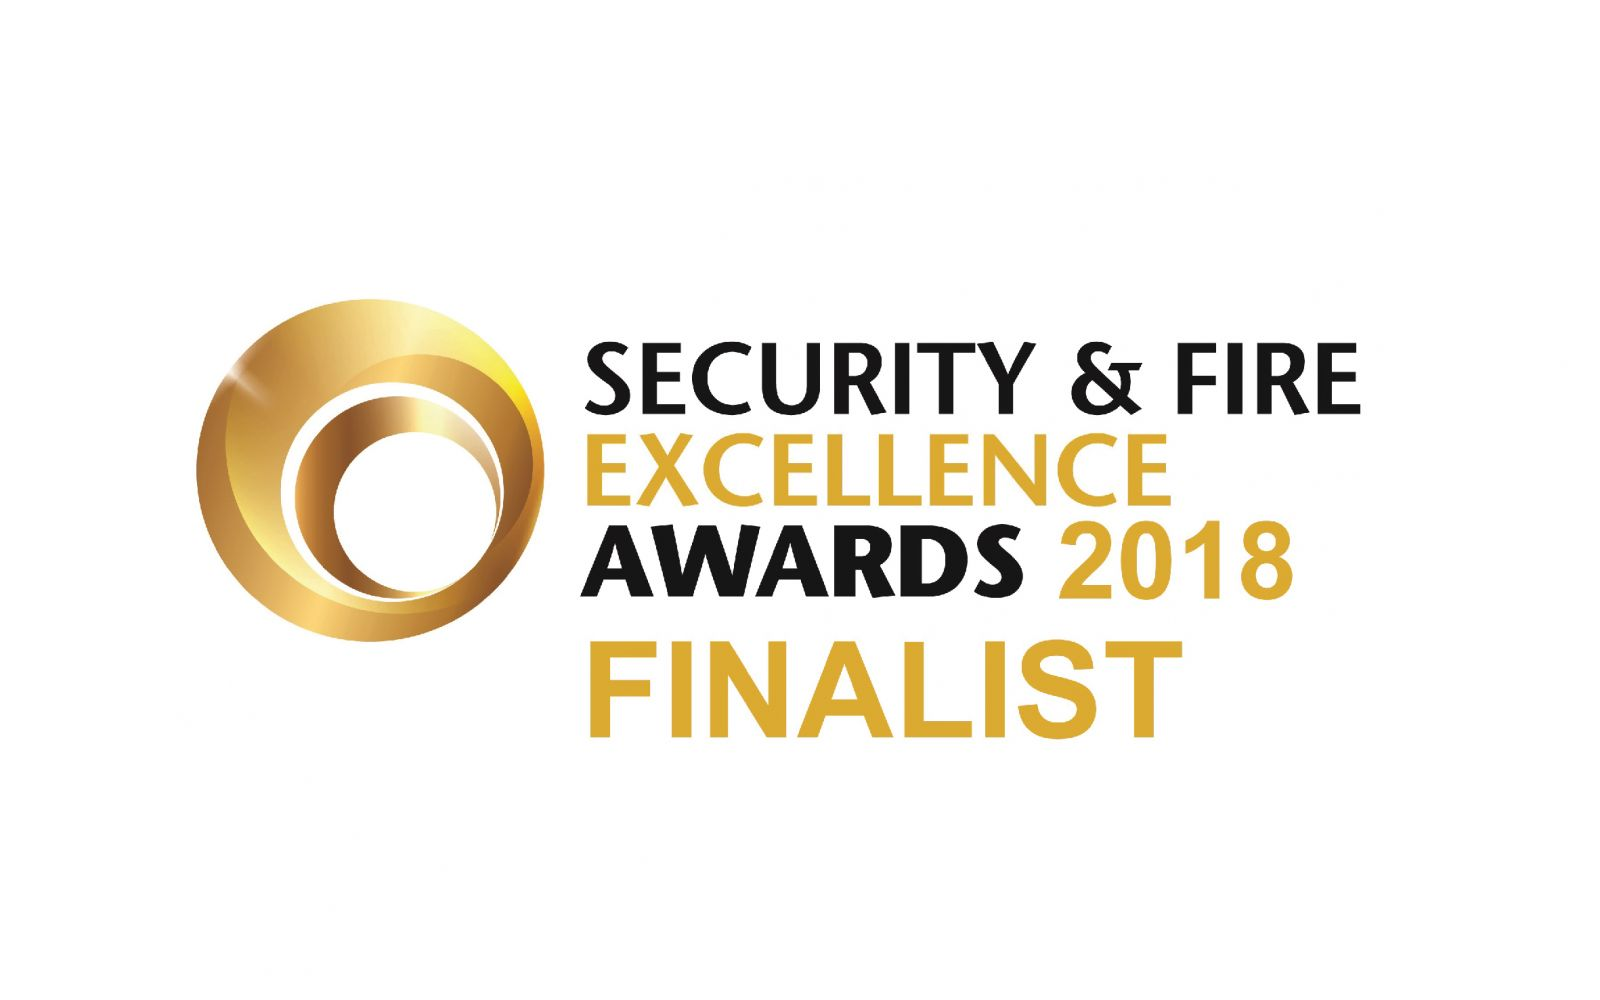 2018 Security & Fire Excellence Awards Finalists